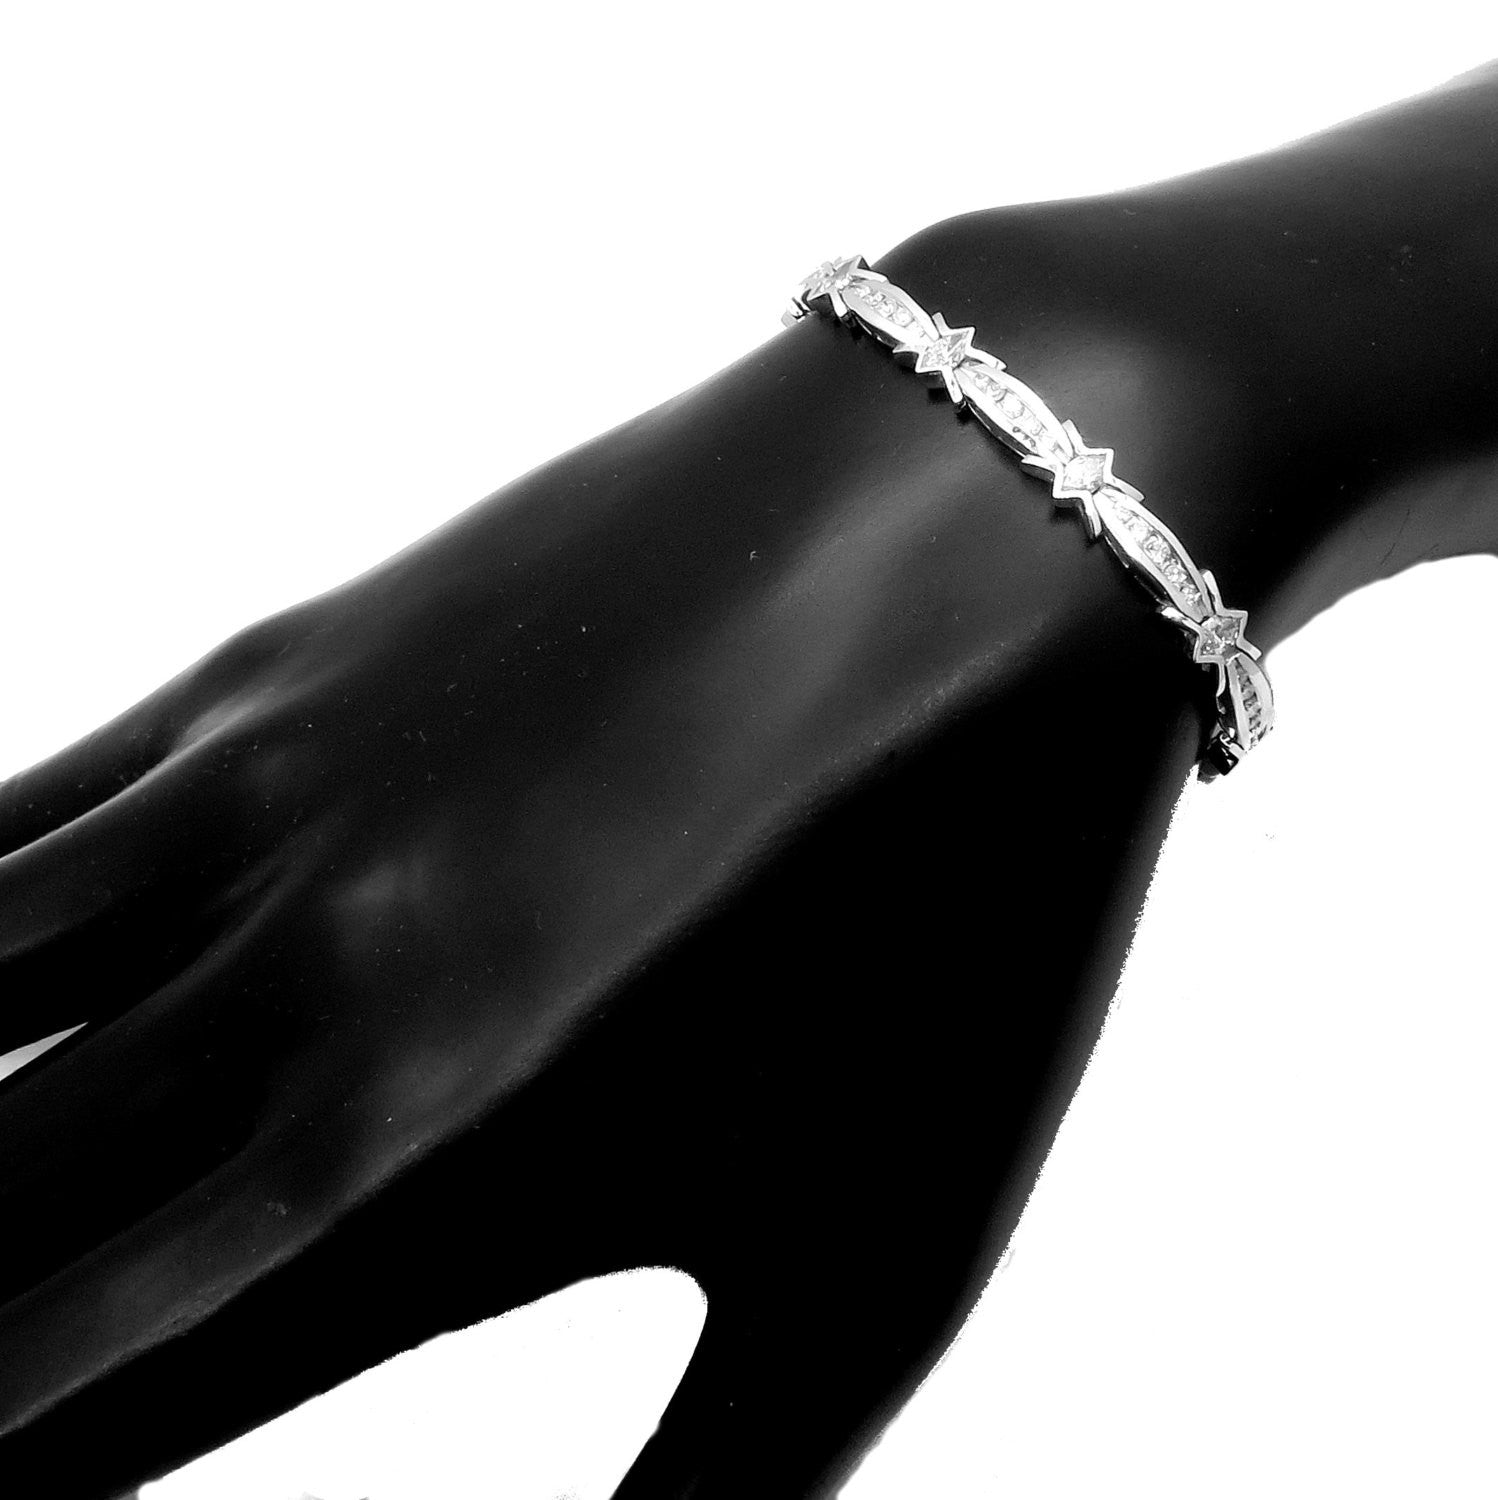 4.85 Carat Diamond Tennis Bracelet